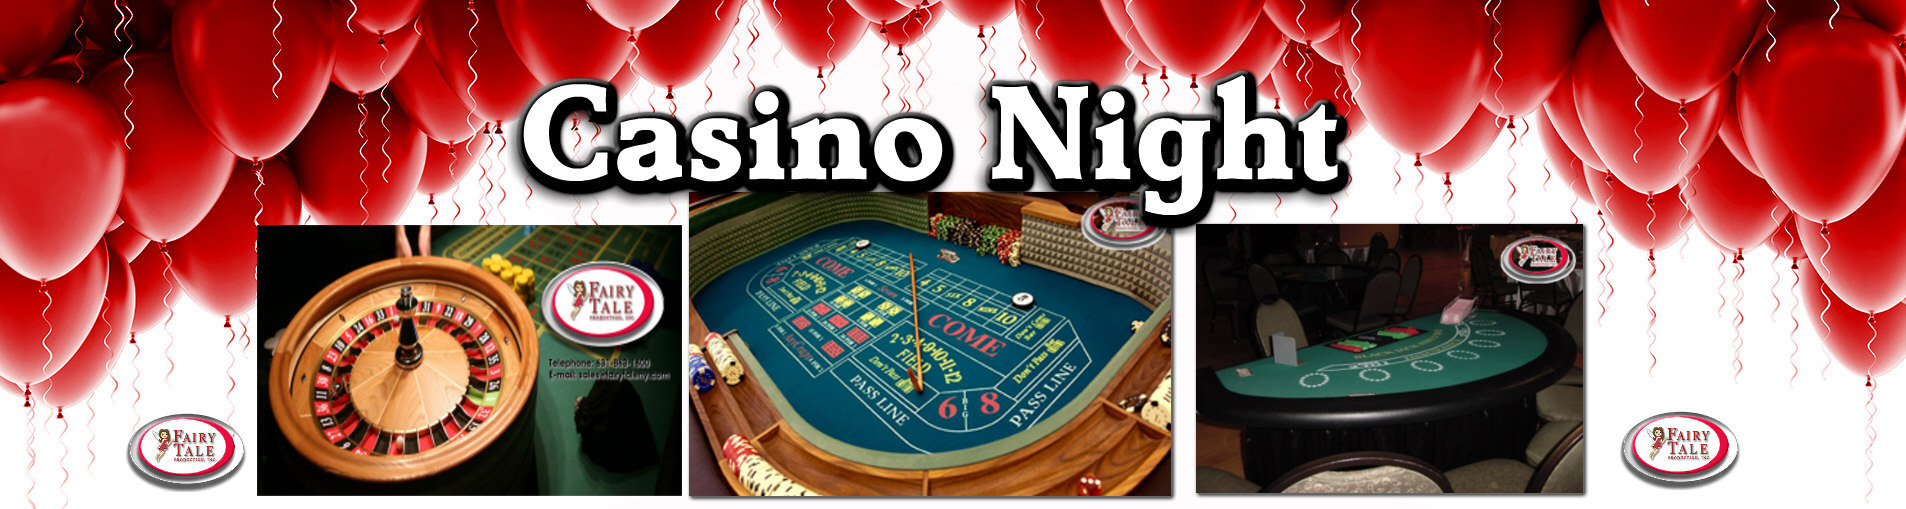 Long Island Party Casino Hosting Table Games